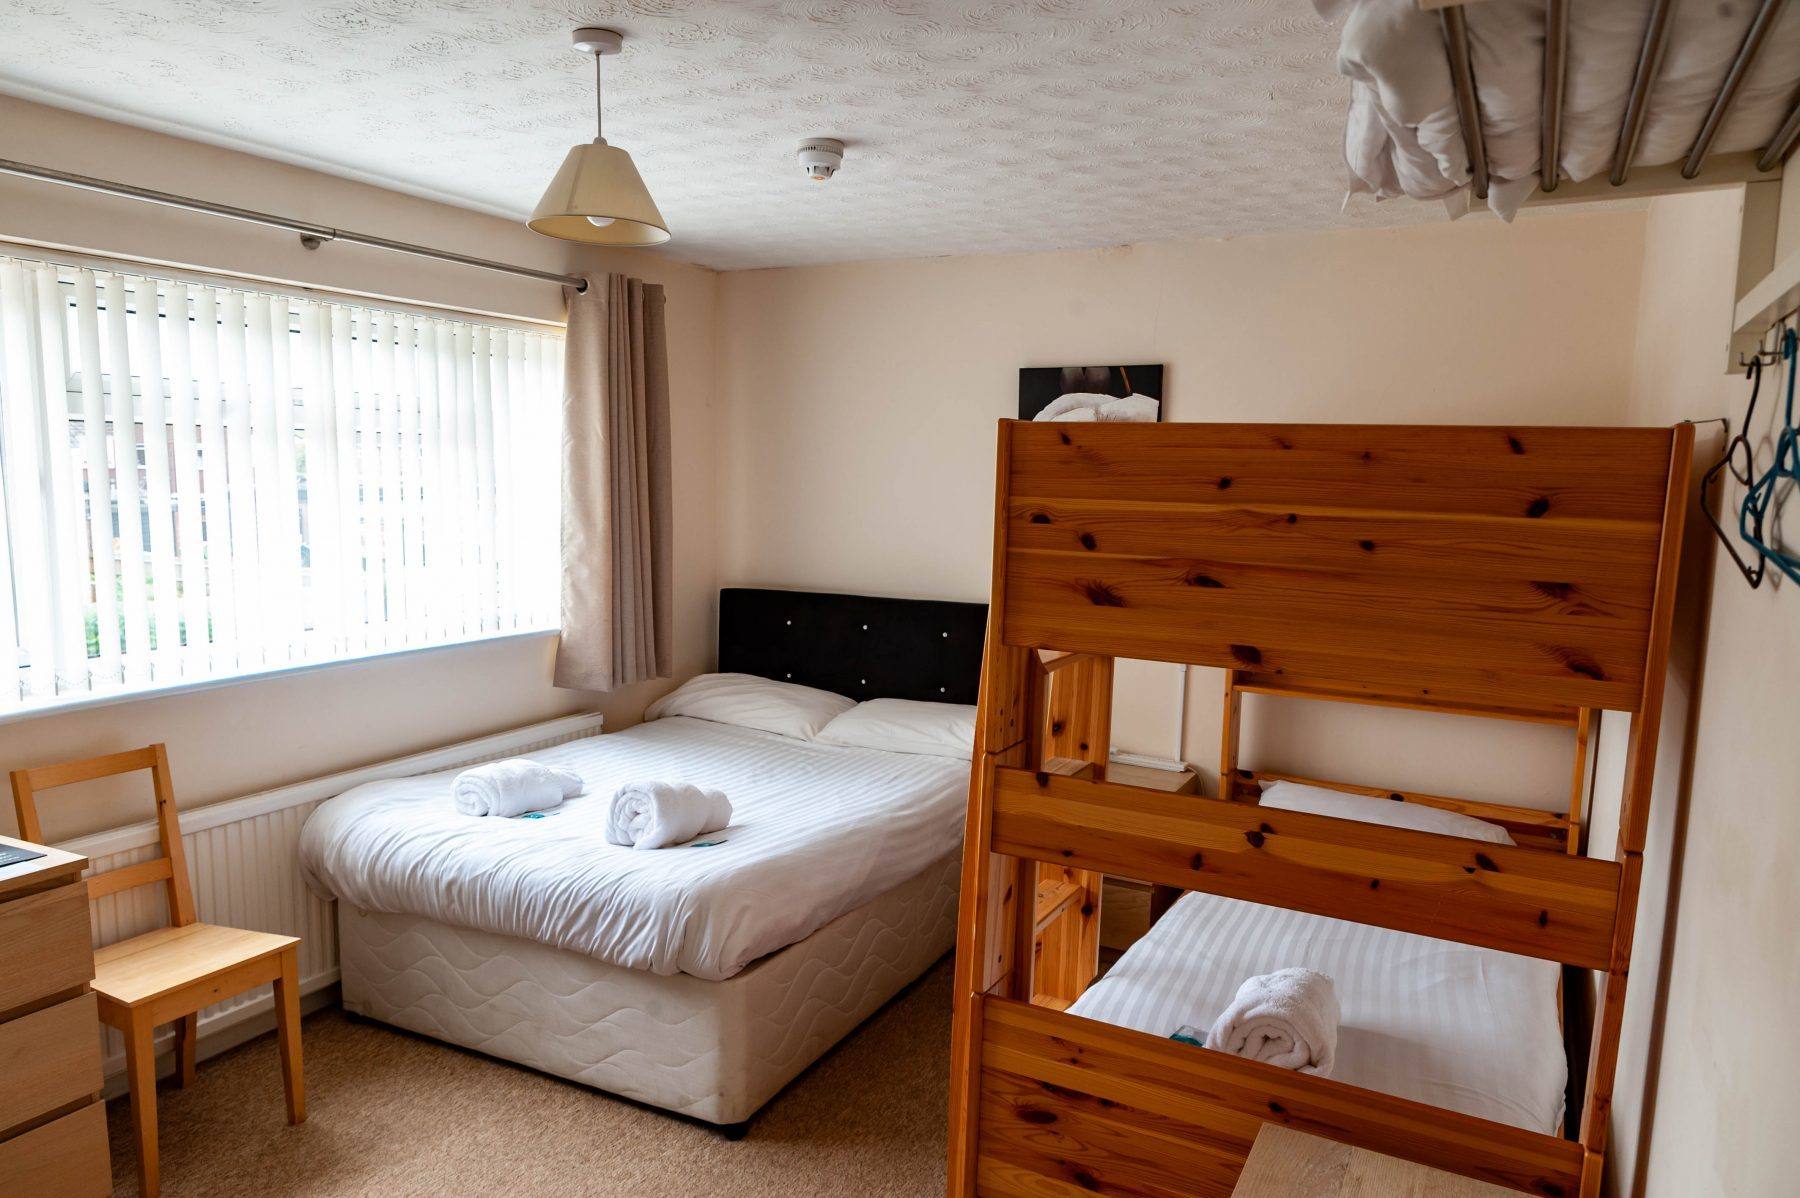 Triple room. One standard double bed and a bunk bed (two single size beds), located upstairs